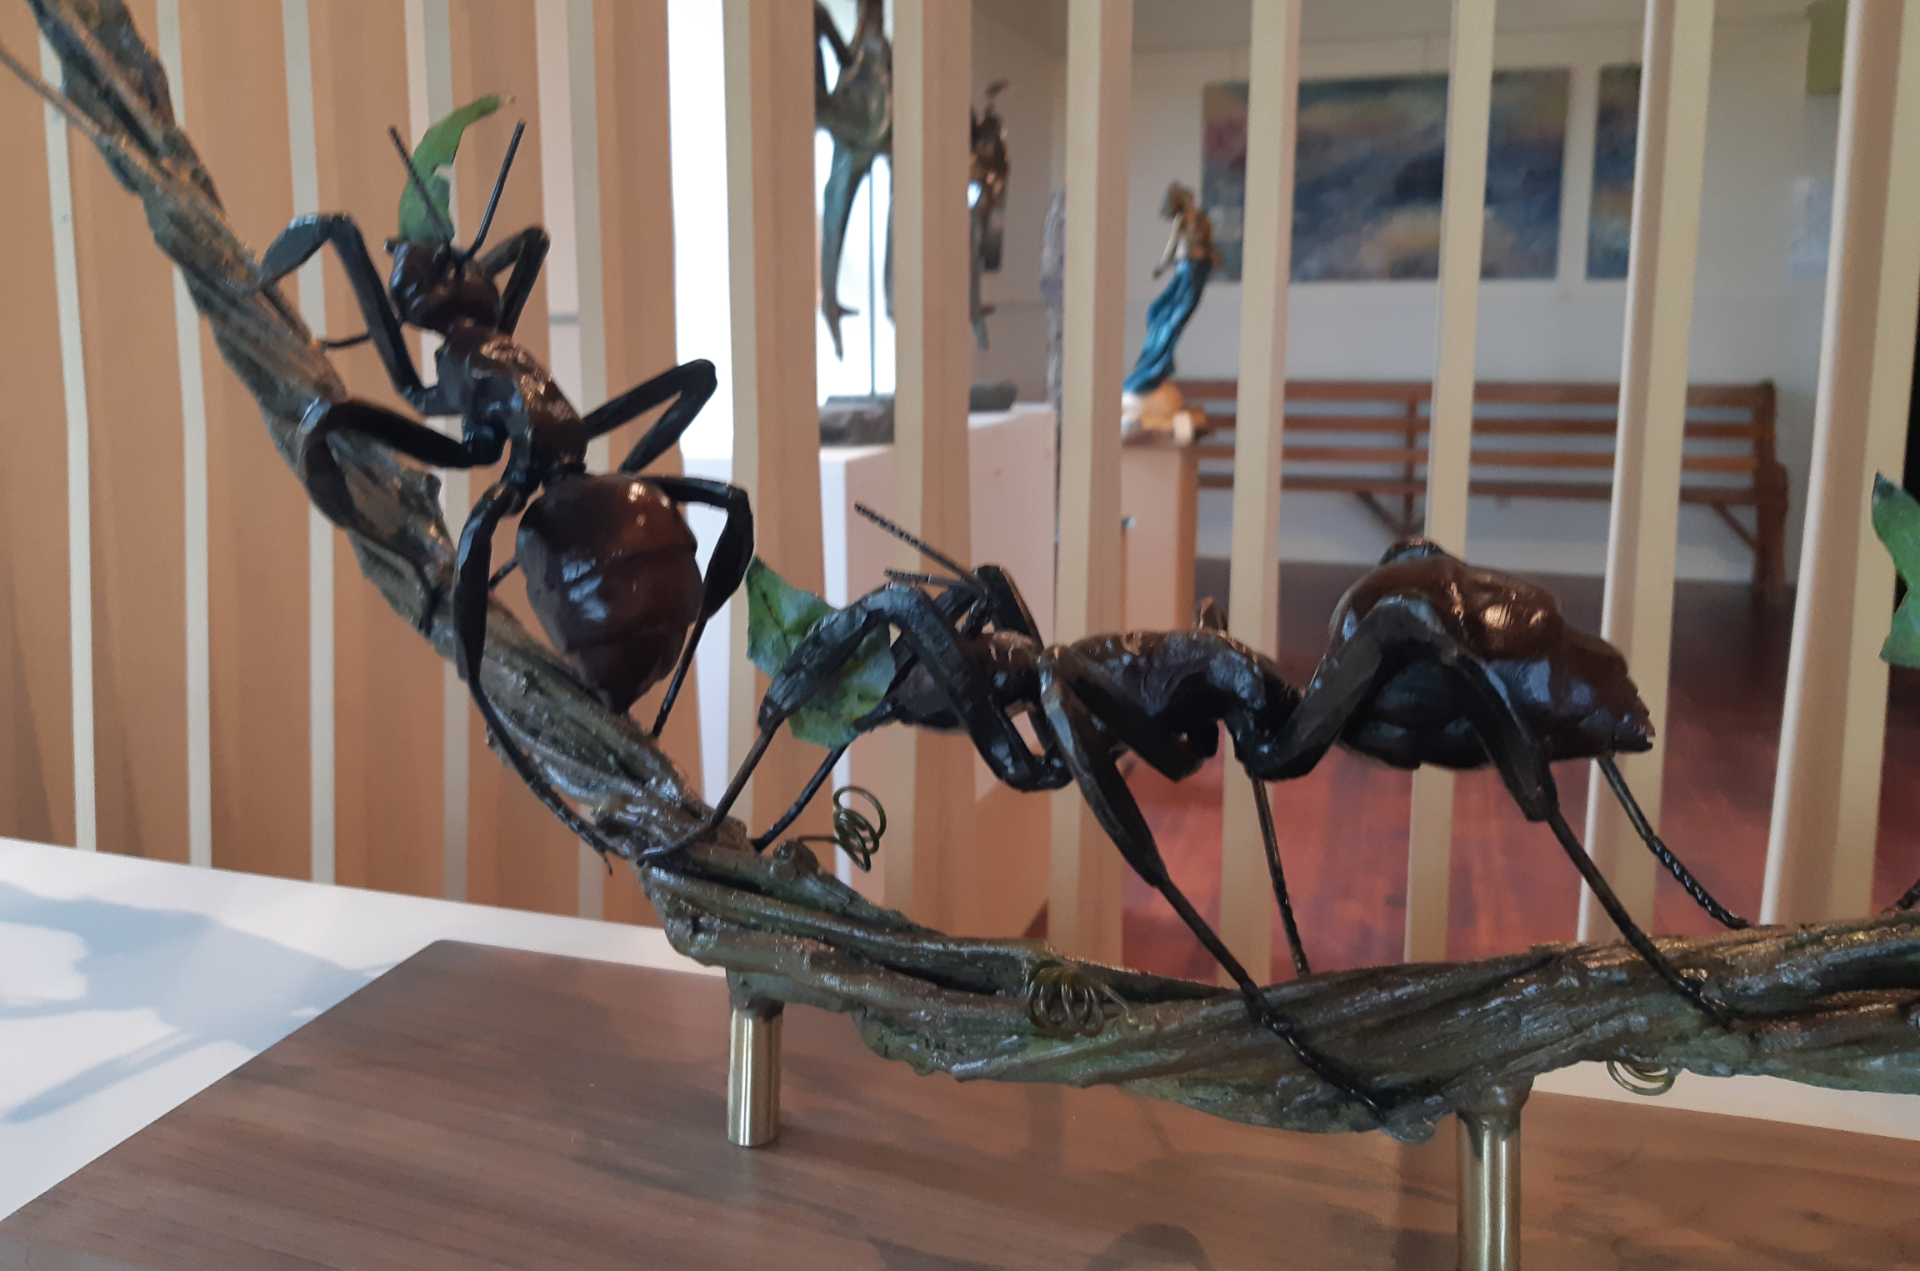 Sculpture de fourmis